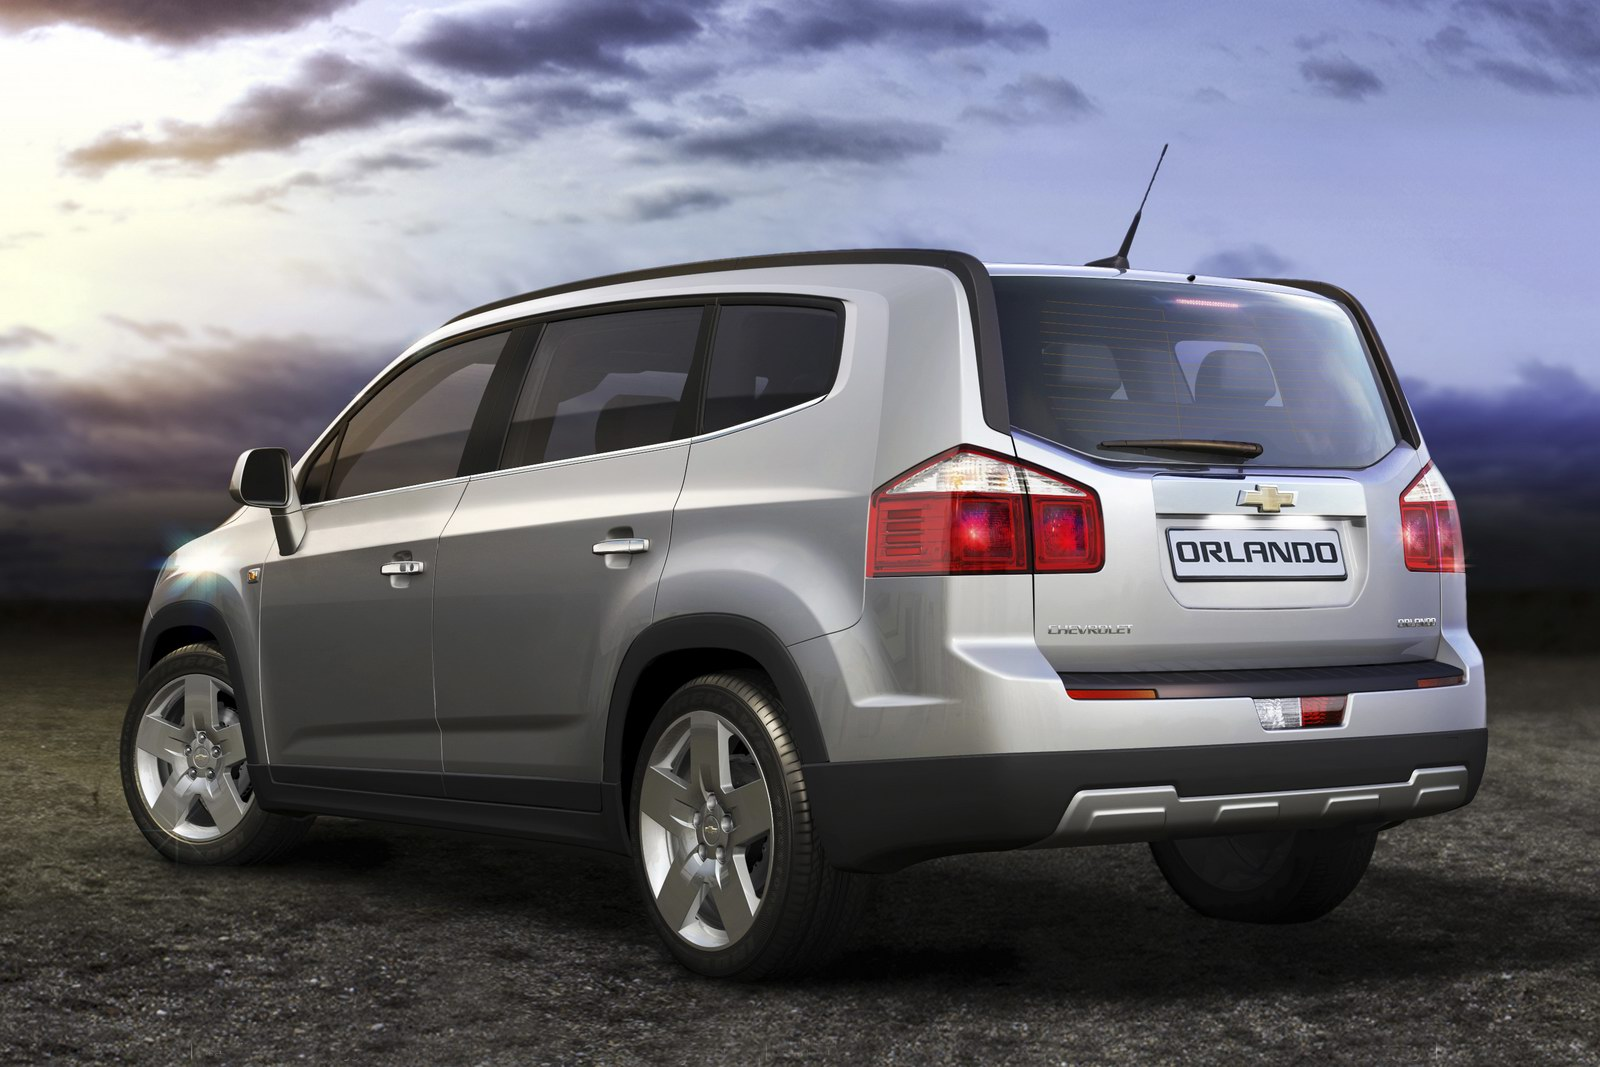 My Perfect Chevrolet Orlando. 3DTuning